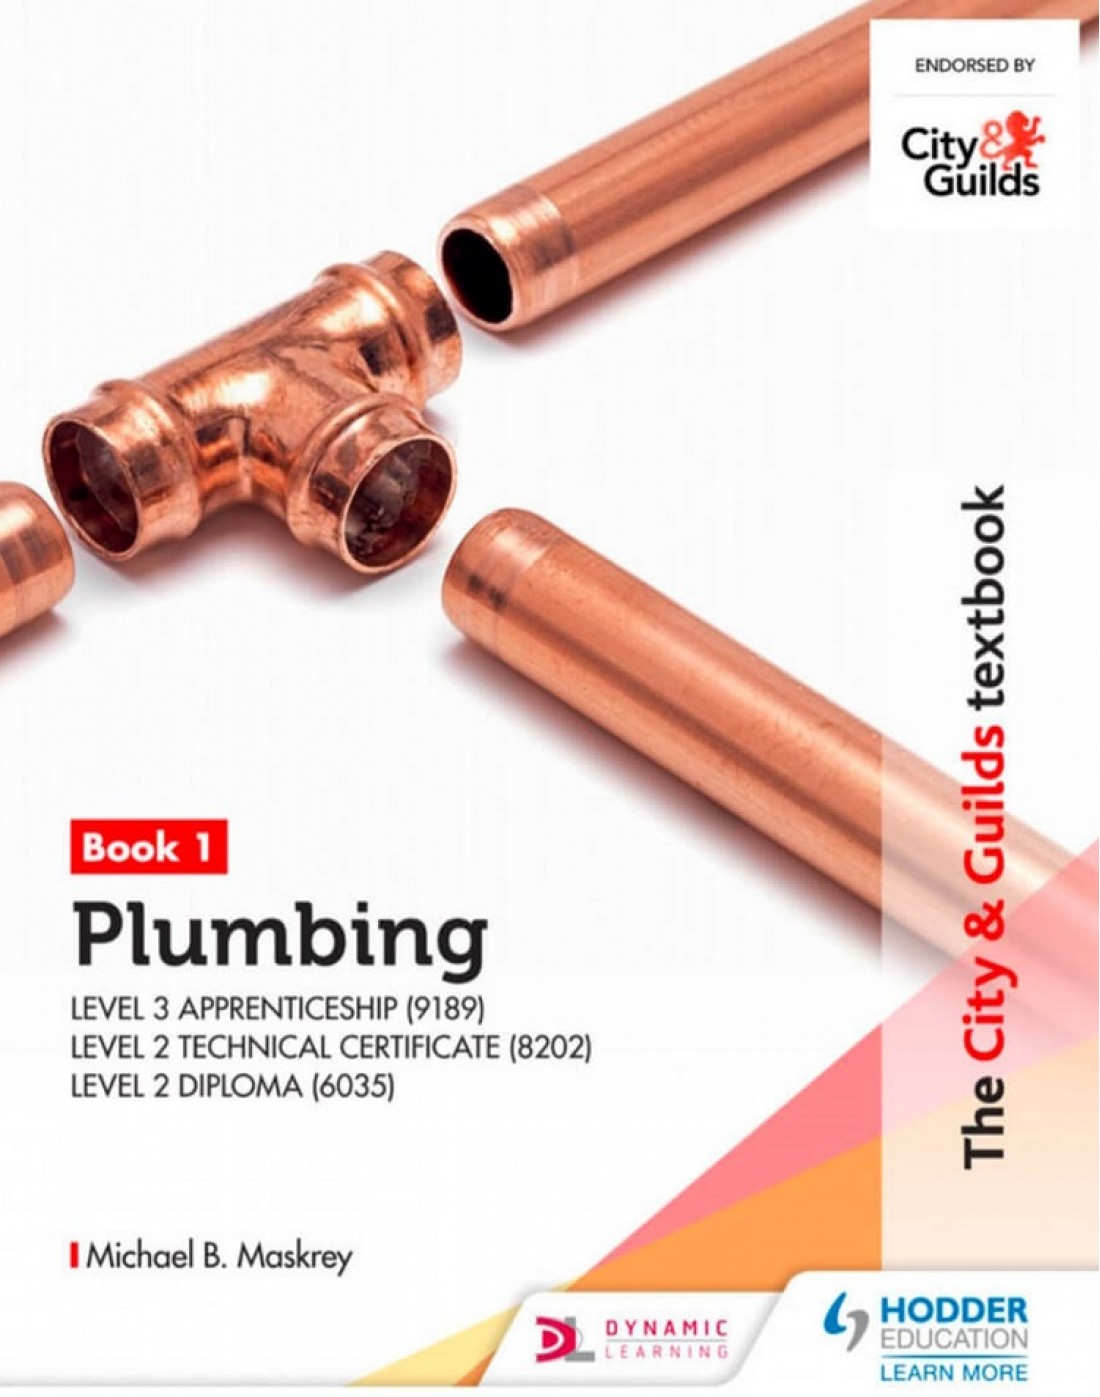 The City & Guilds Plumbing Book 1 for the Level 3 Apprenticeship (9189), Level 2 Tech. Certificate (8202) & Level 2 Diploma (6035) (PDF)